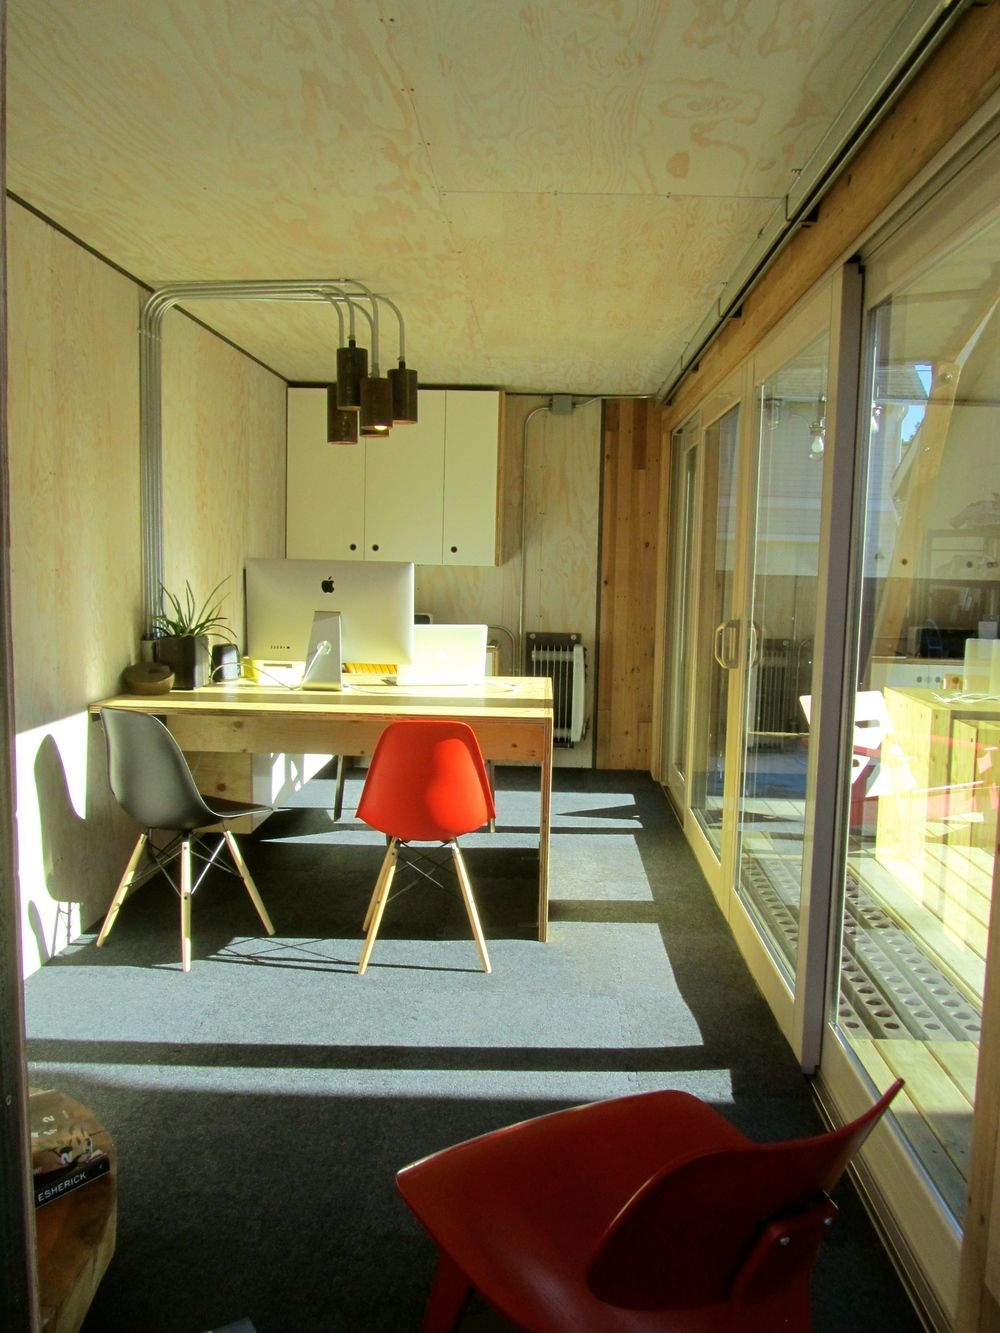 Shipping Container Office Interior Plywood Clad Walls And Desks Industrial Pendant Lights Eames